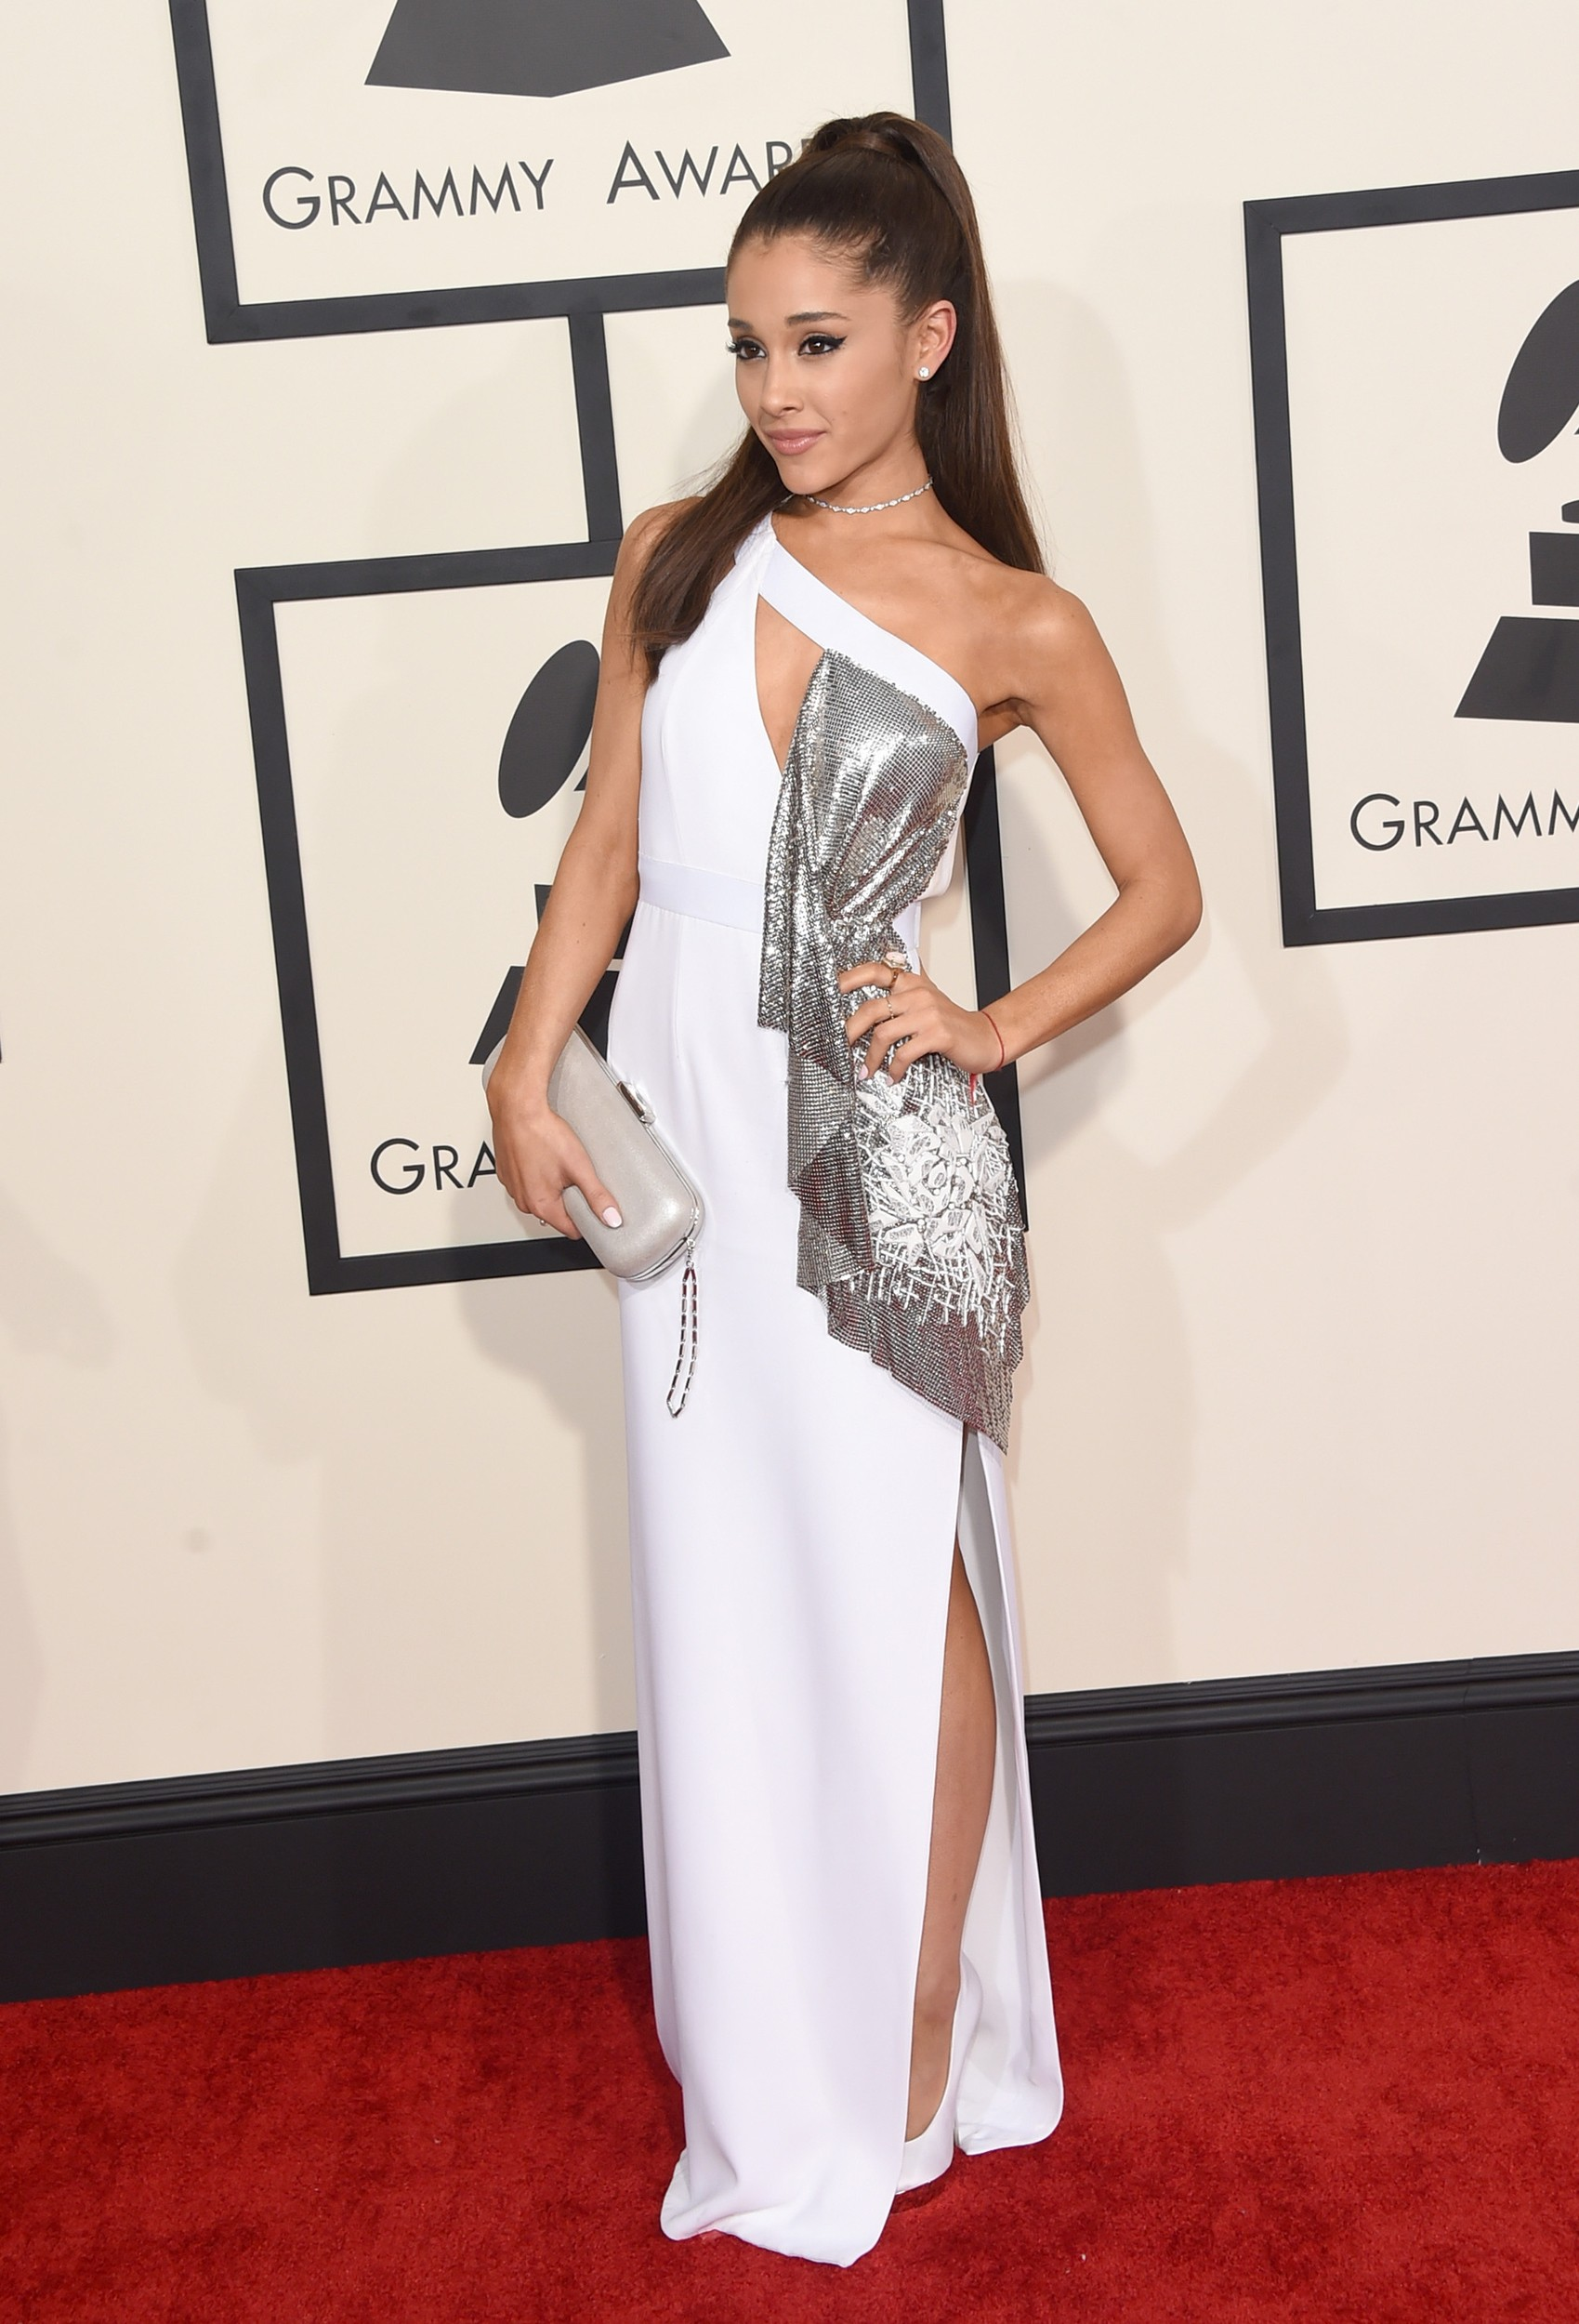 57th-grammy-awards-arrivals-1